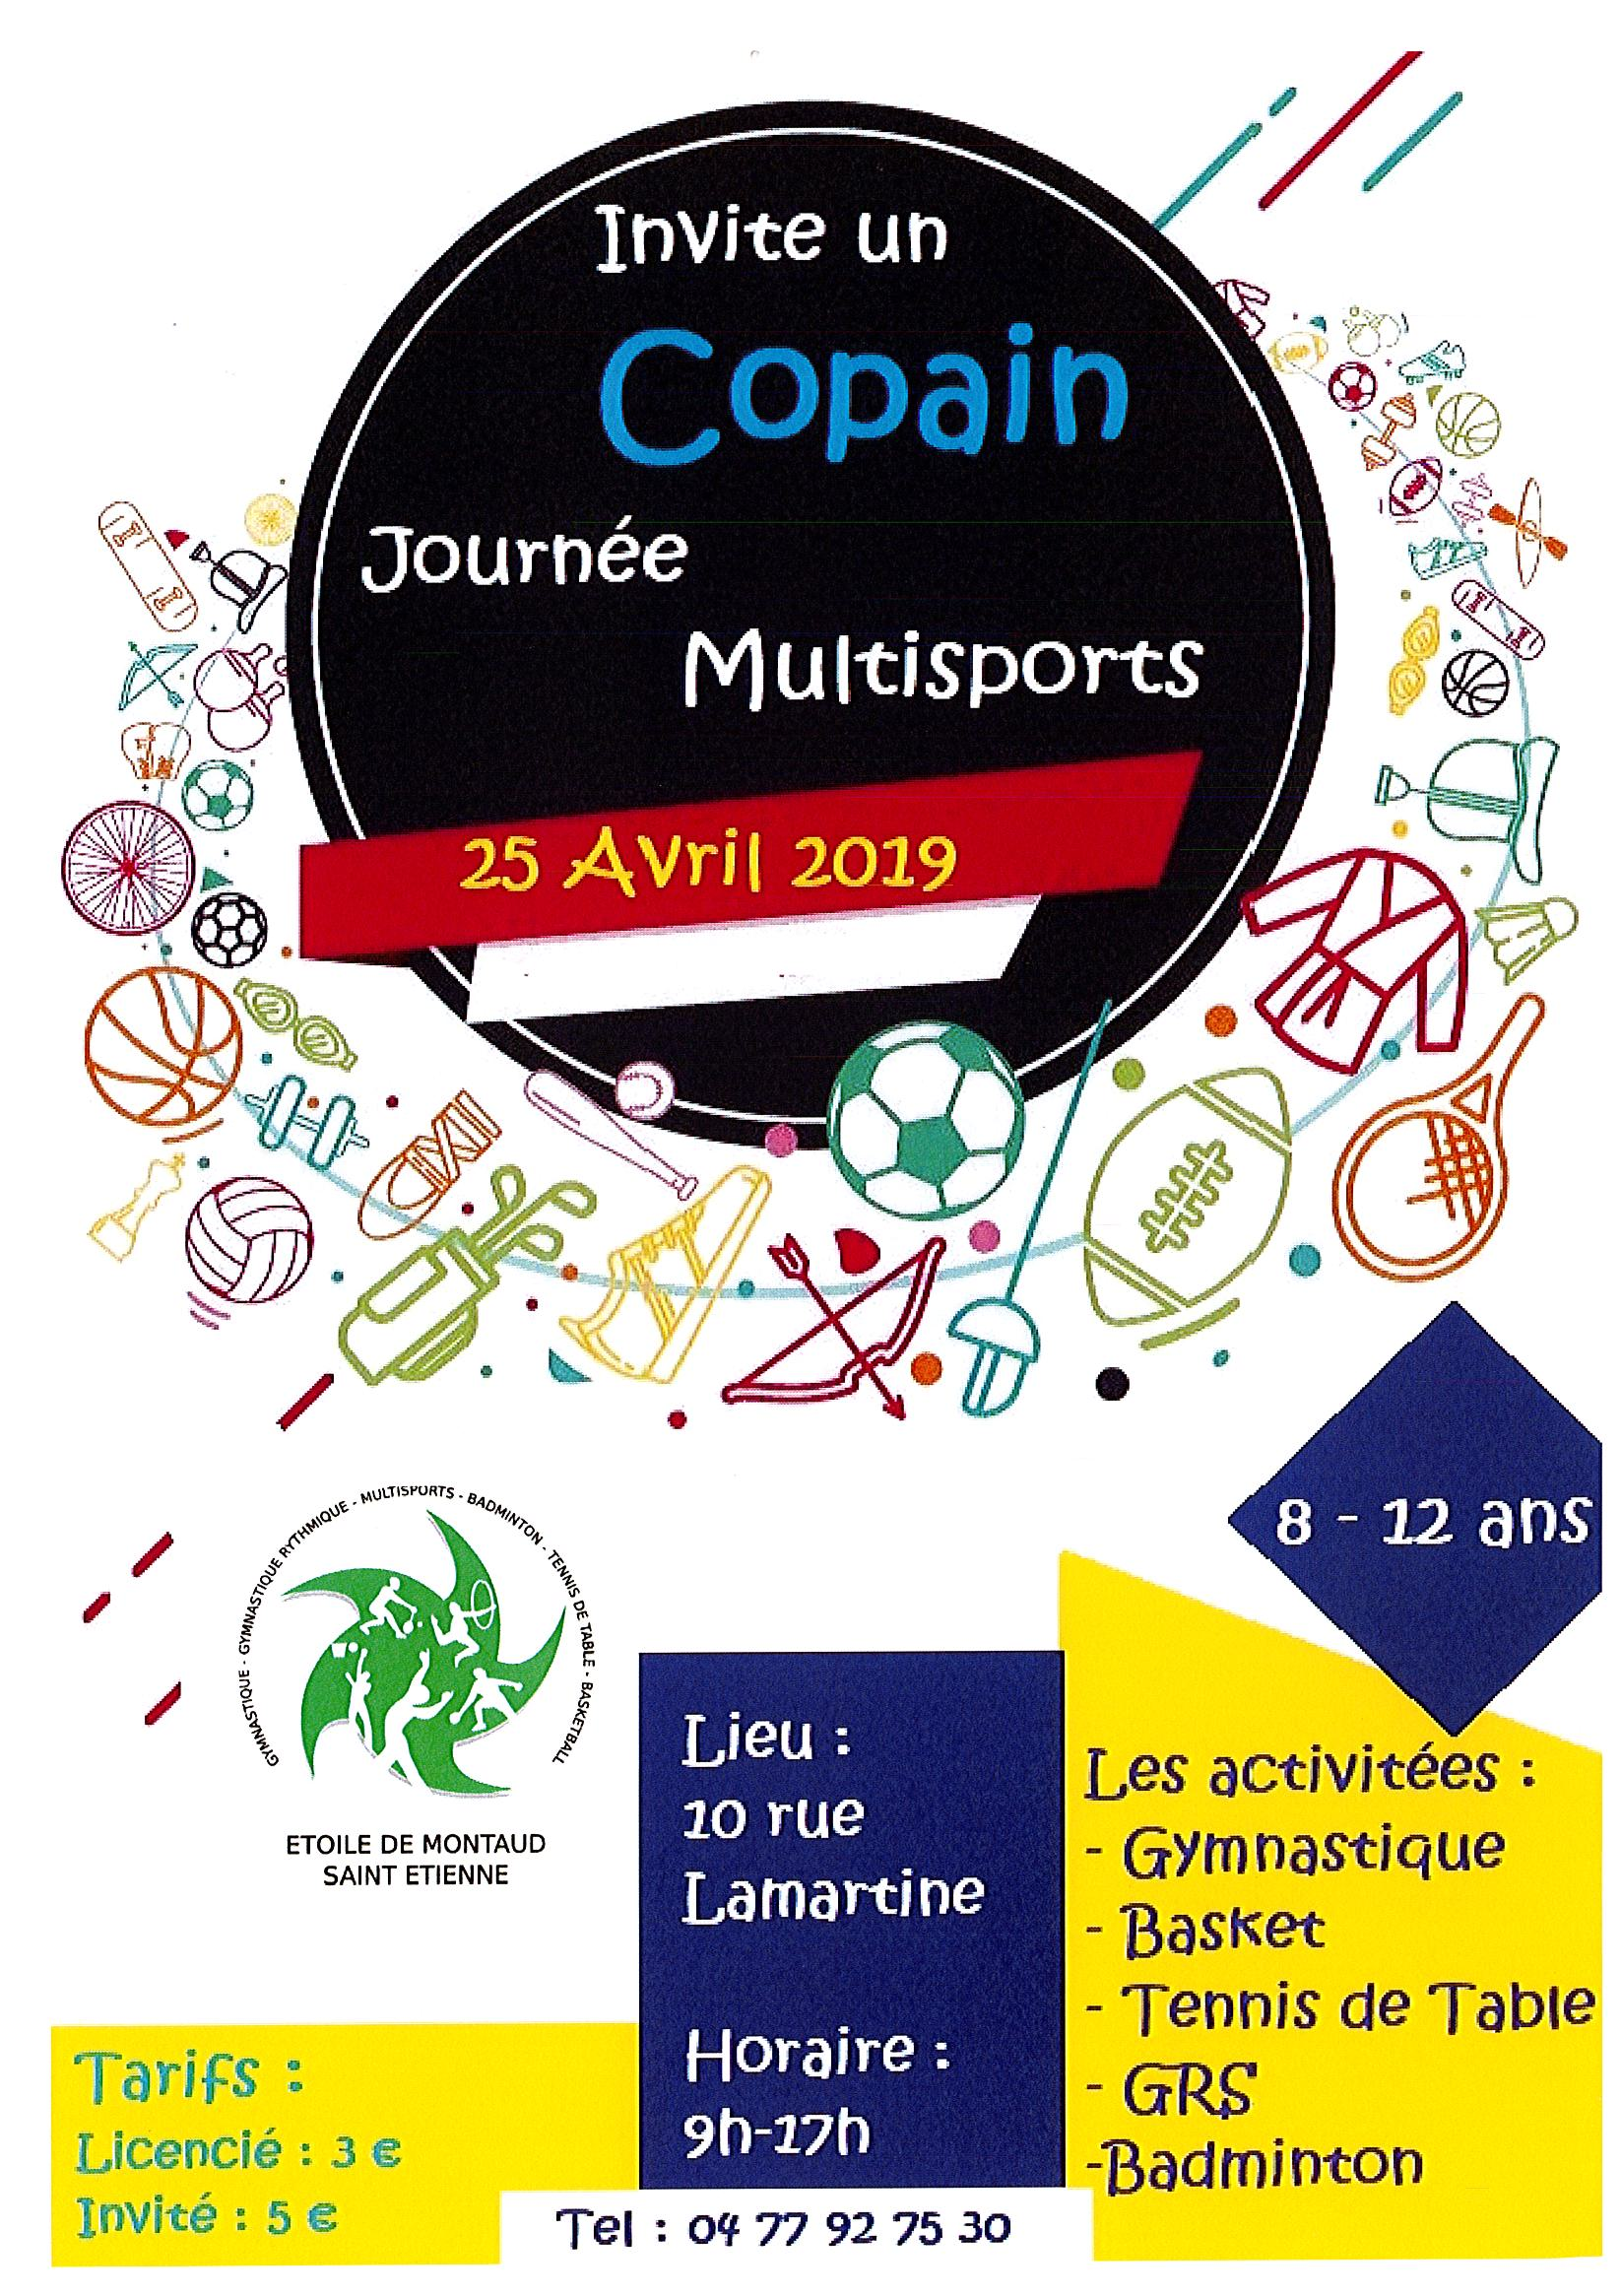 JOURNEE MULTISPORTS 25 AVRIL